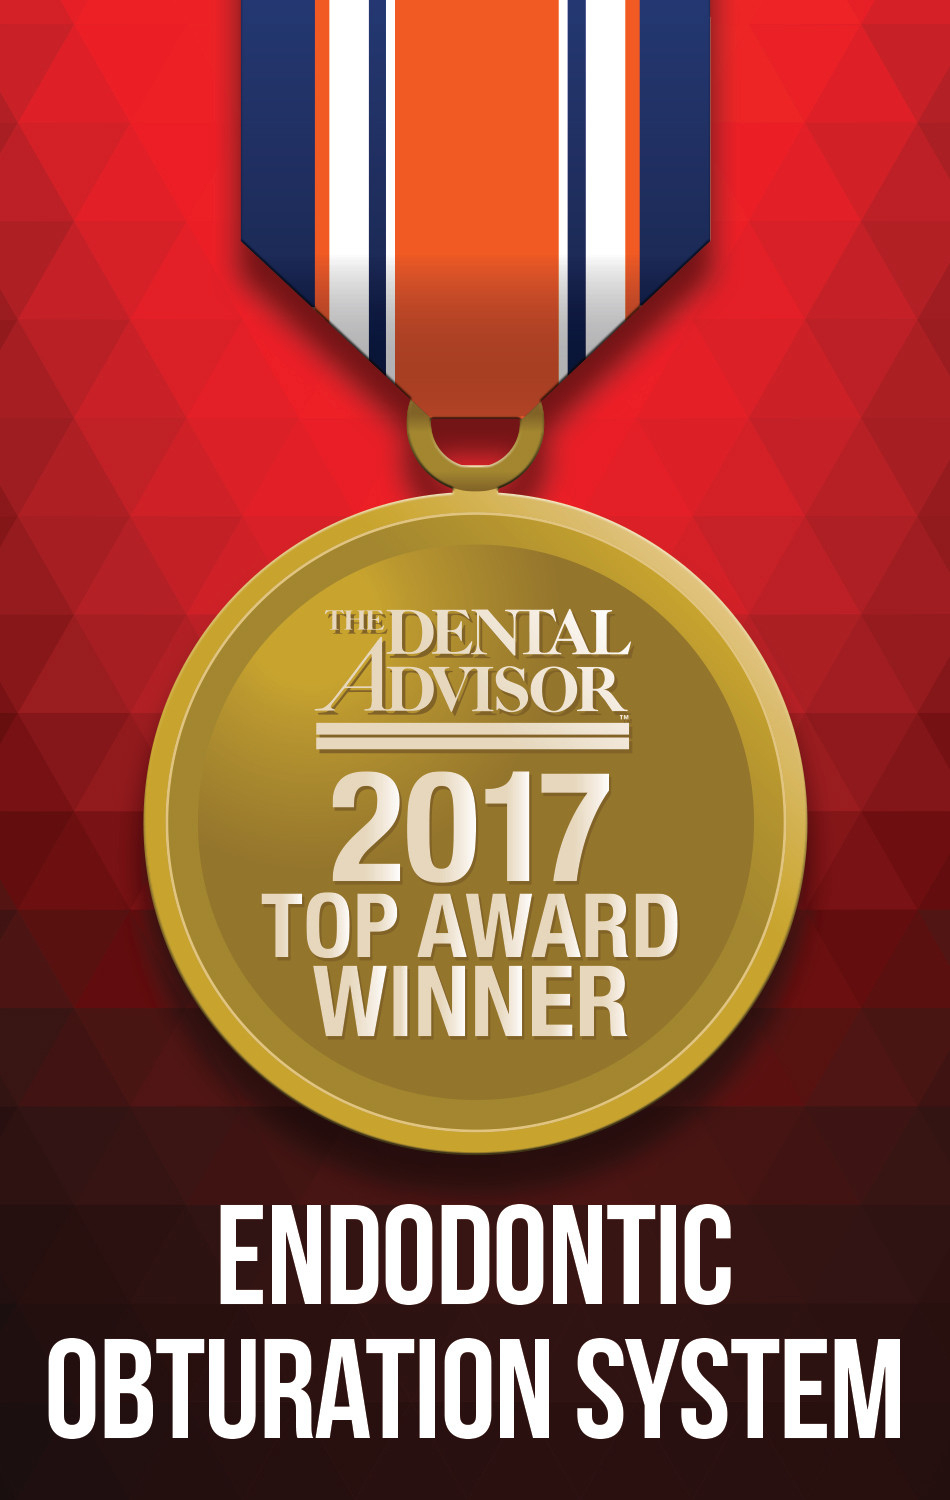 The Dental Advisor Top 2017 Awards - Elements Free